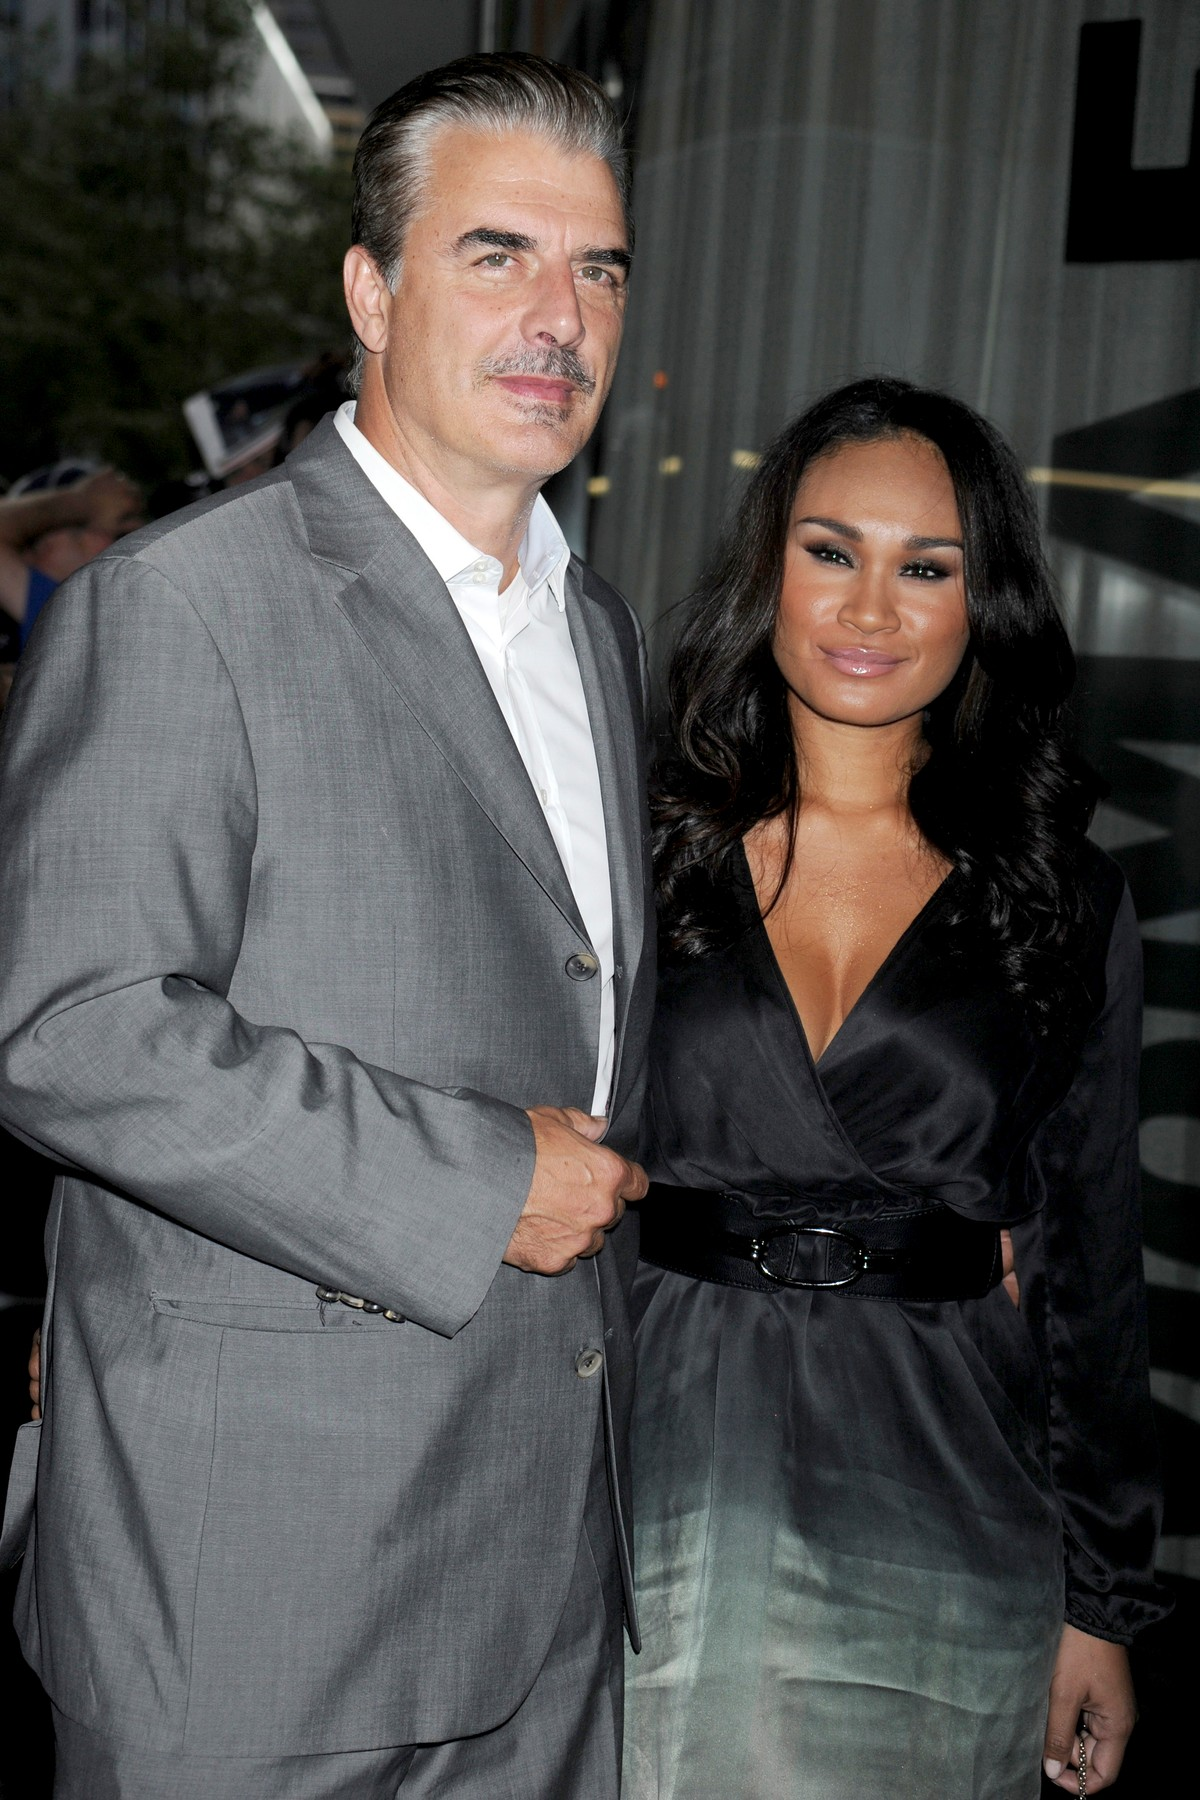 July 30, 2013 - New York, New York, USA - Chris Noth and Tara Wilson attend a screening of Radius TWC's 'Lovelace' hosted by The Cinema Society and MCM with Grey Goose at The Museum of Modern Art on July 30, 2013 in New York City., Image: 167601404, License: Rights-managed, Restrictions: , Model Release: no, Credit line: Dennis Van Tine / Zuma Press / Profimedia